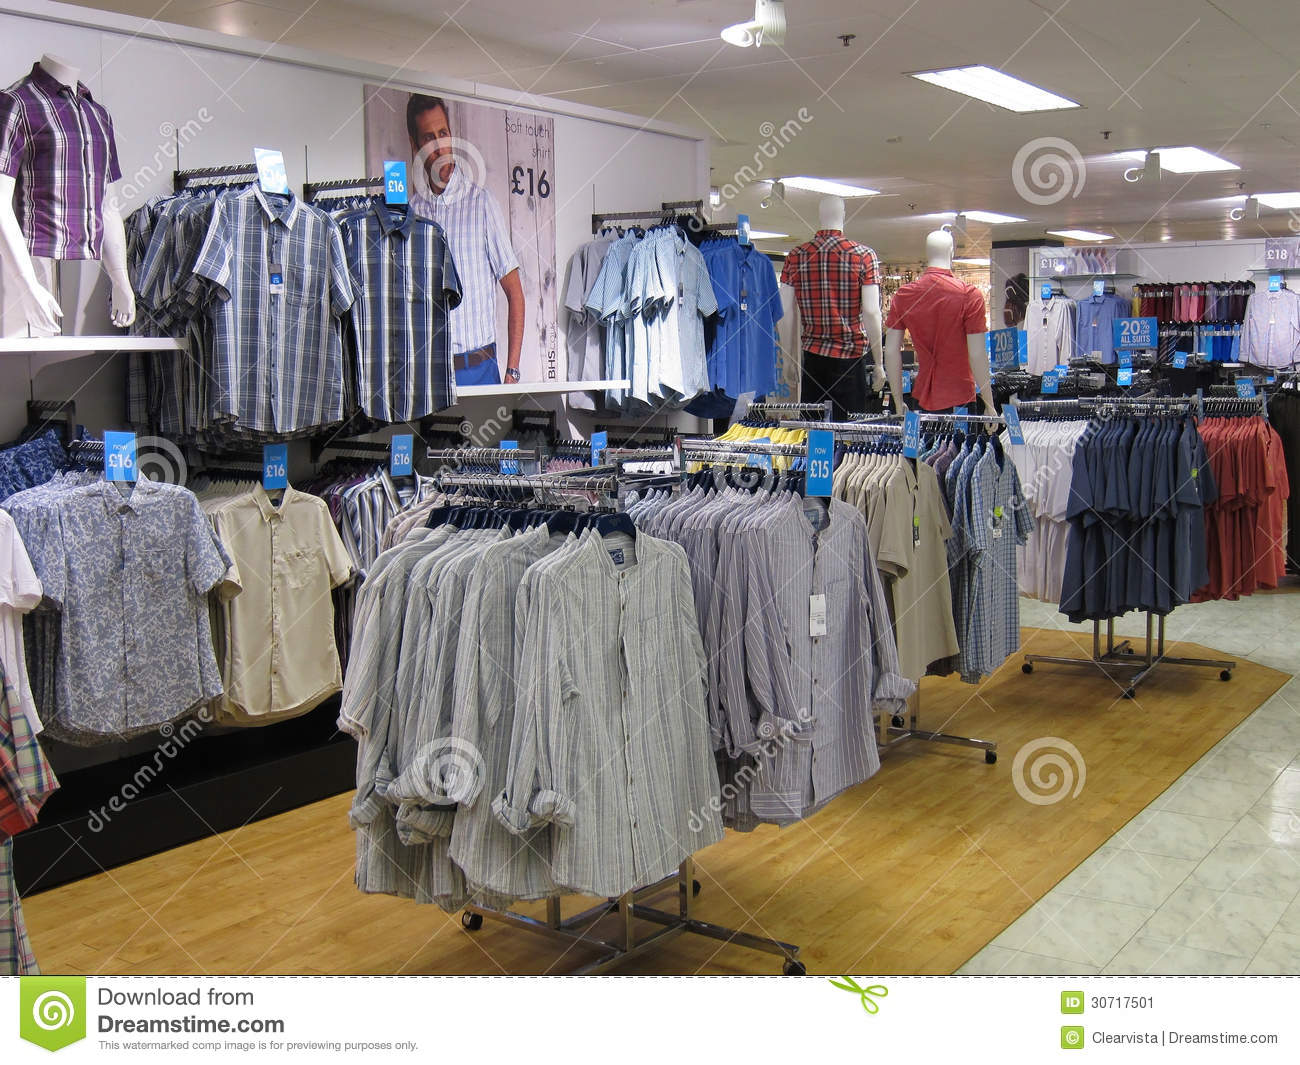 inside of a mans clothing store displaying mainly shirts. This store